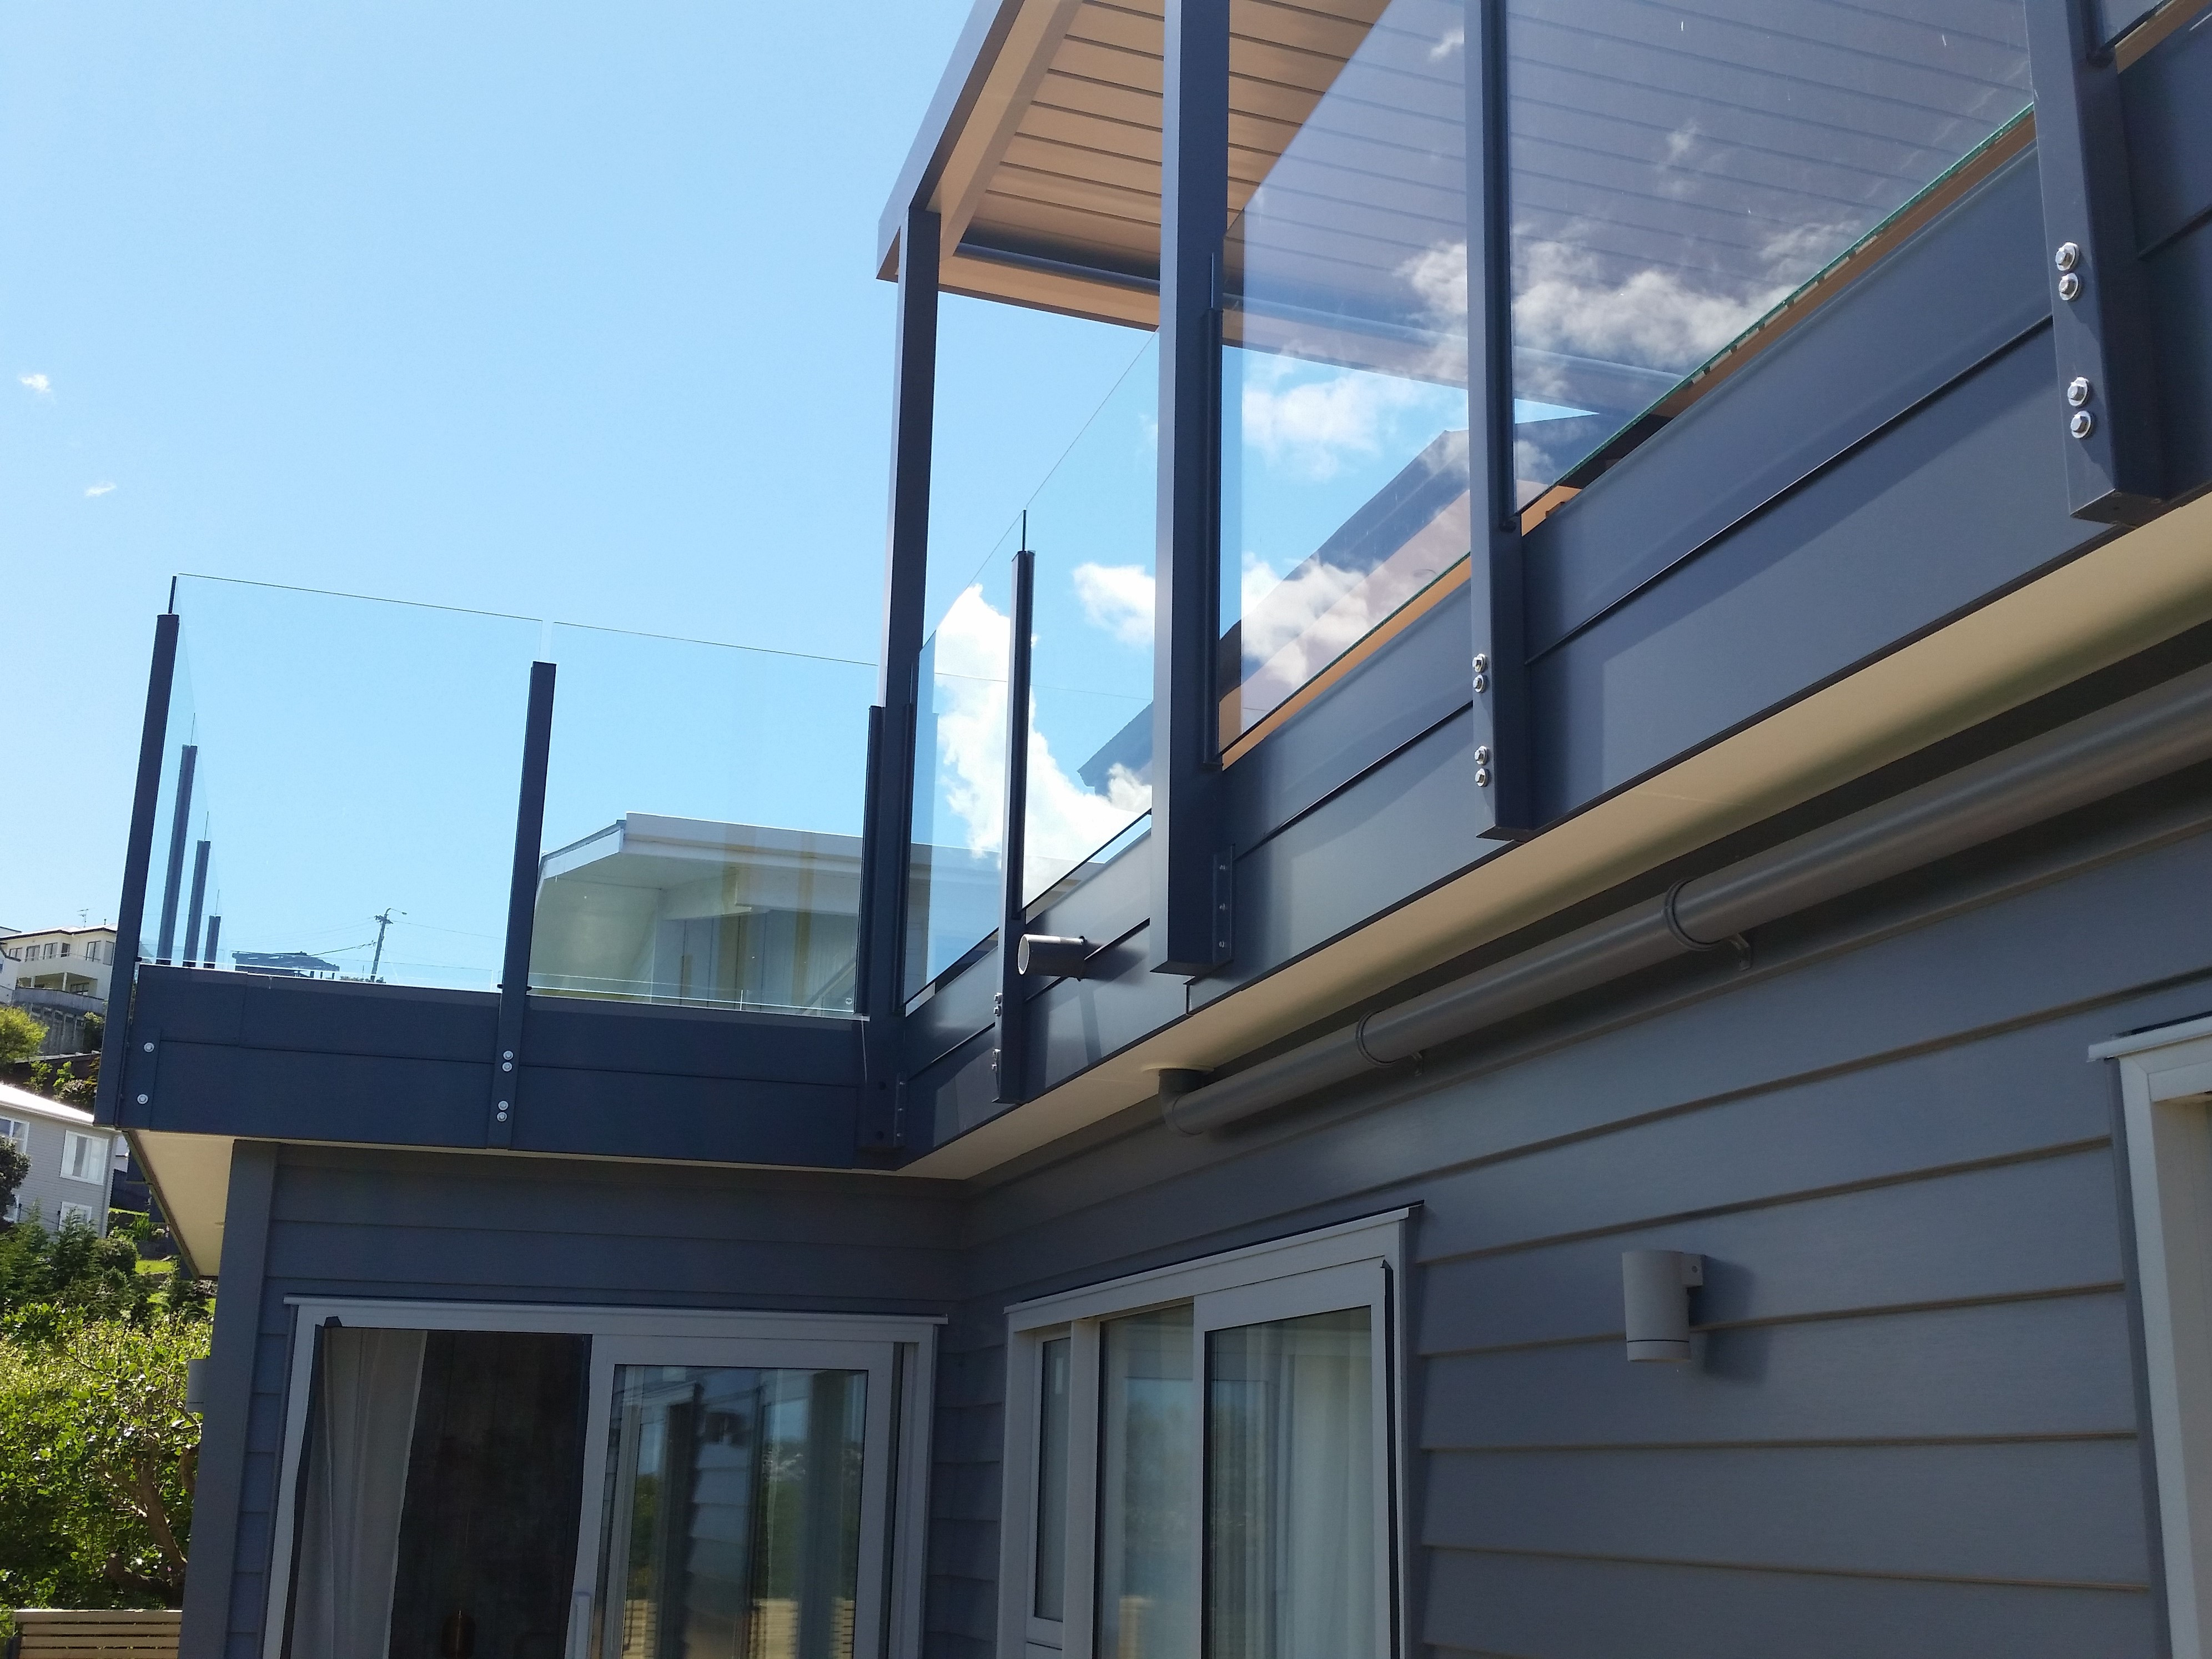 Semi-Frameless Vetro Glazed side fixed Balustrade for view with no top rail